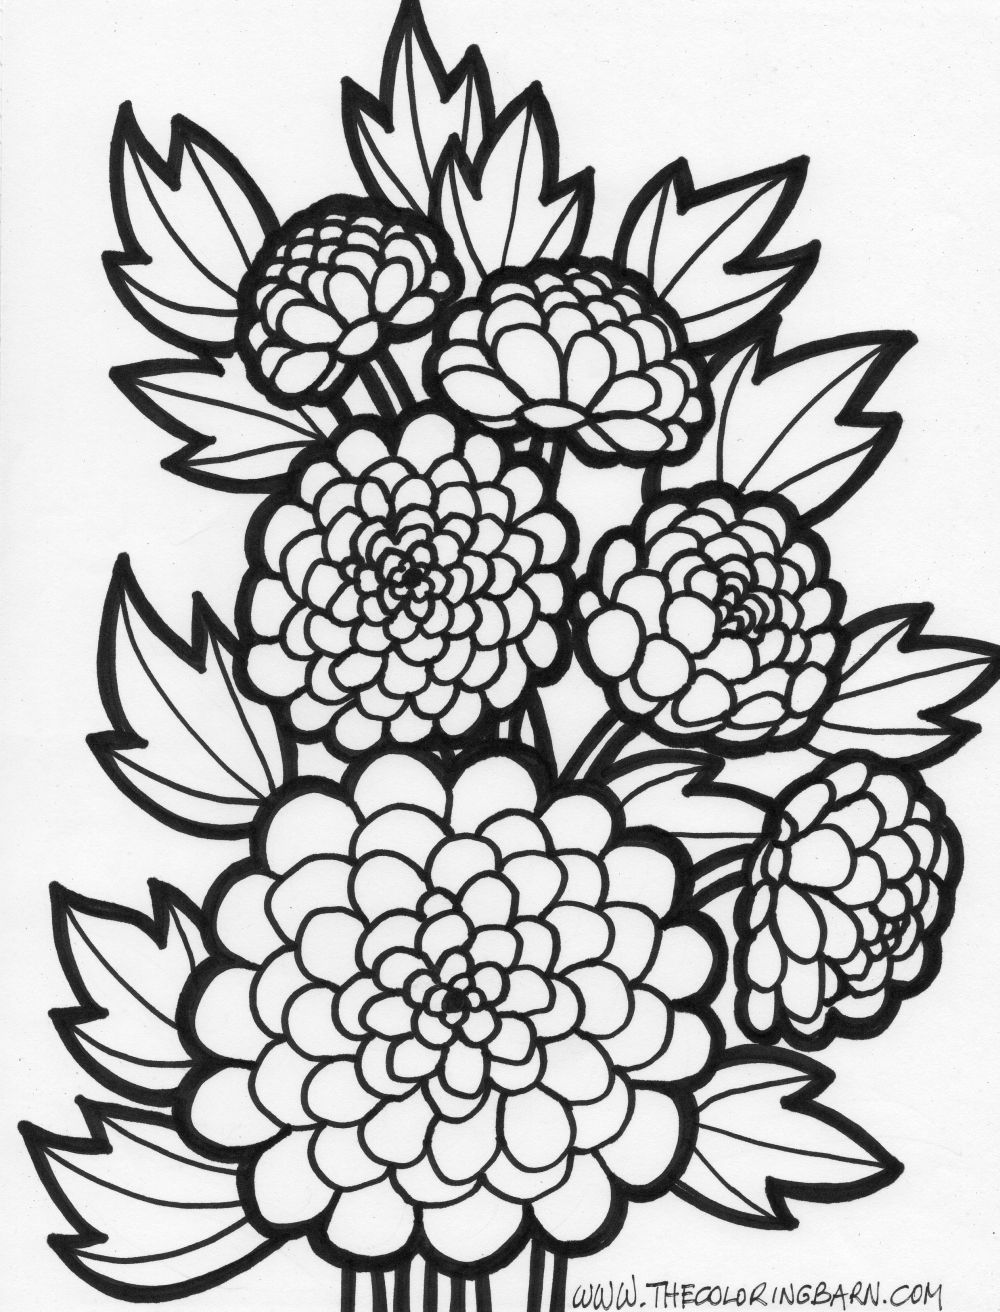 Printable coloring pages for adults flowers - Flower Flower Coloring Page